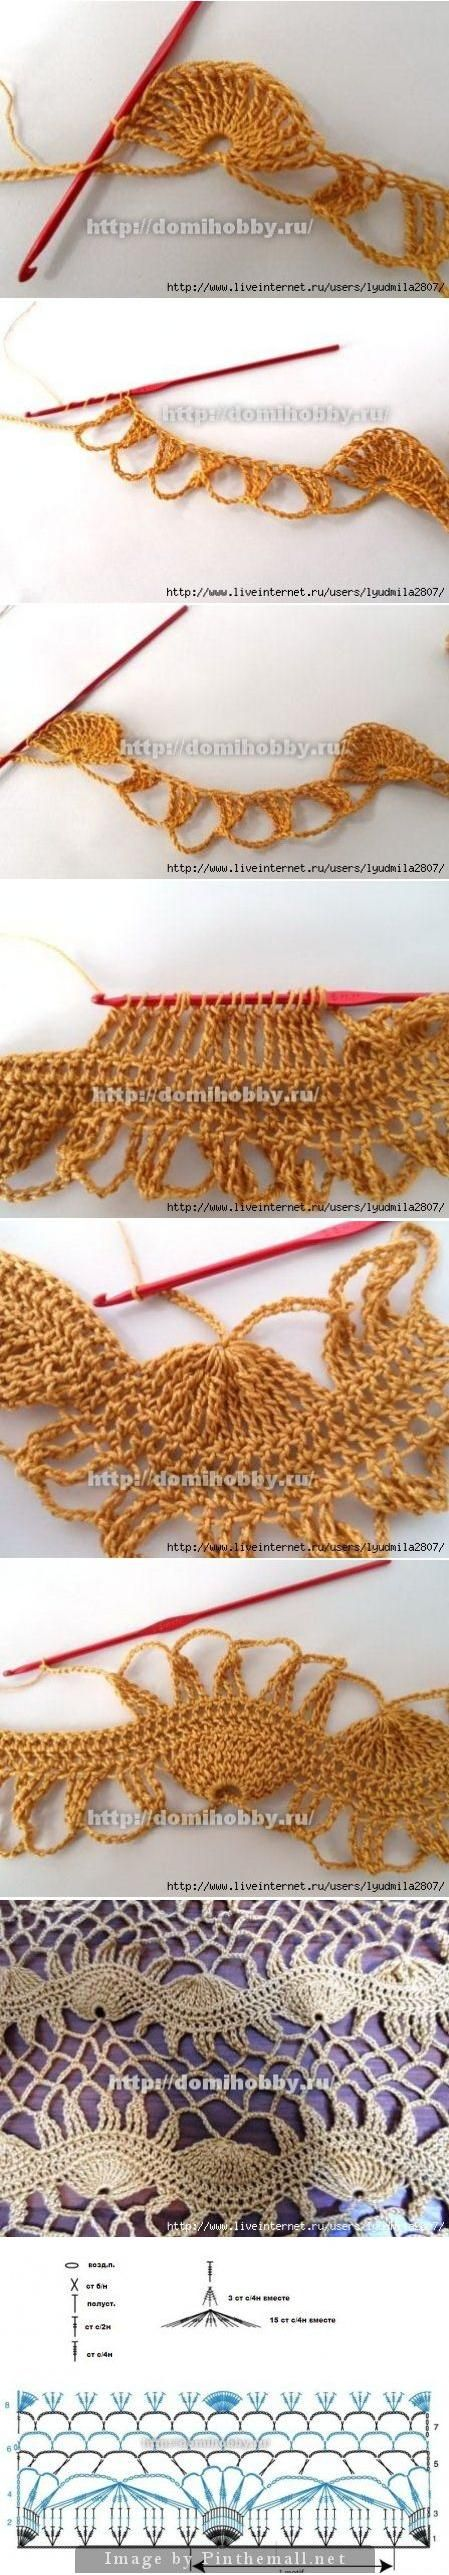 Awesome crochet technique looks like broomstick lace! falso crochê de grampo: